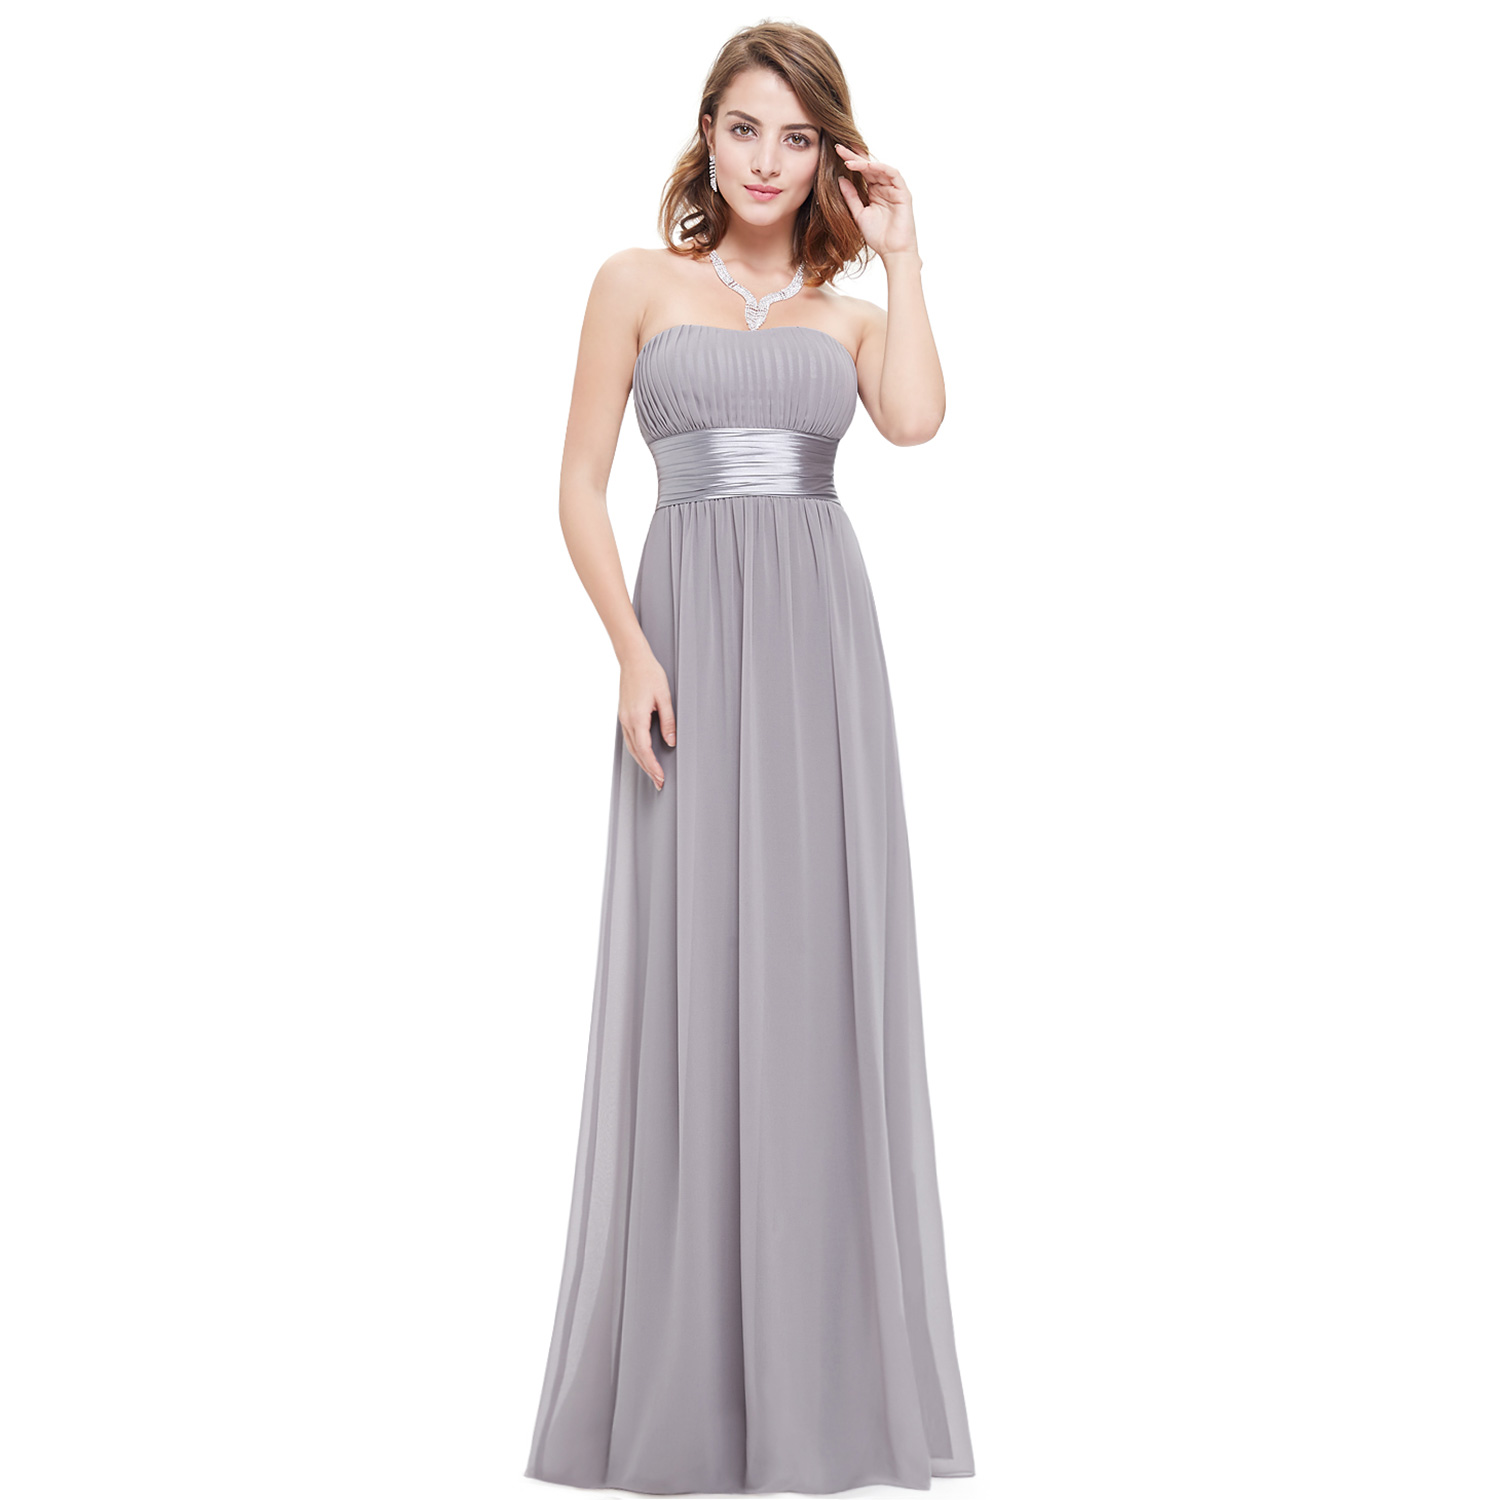 Us long chiffon wedding bridesmaid dresses prom homecoming for Strapless wedding guest dresses